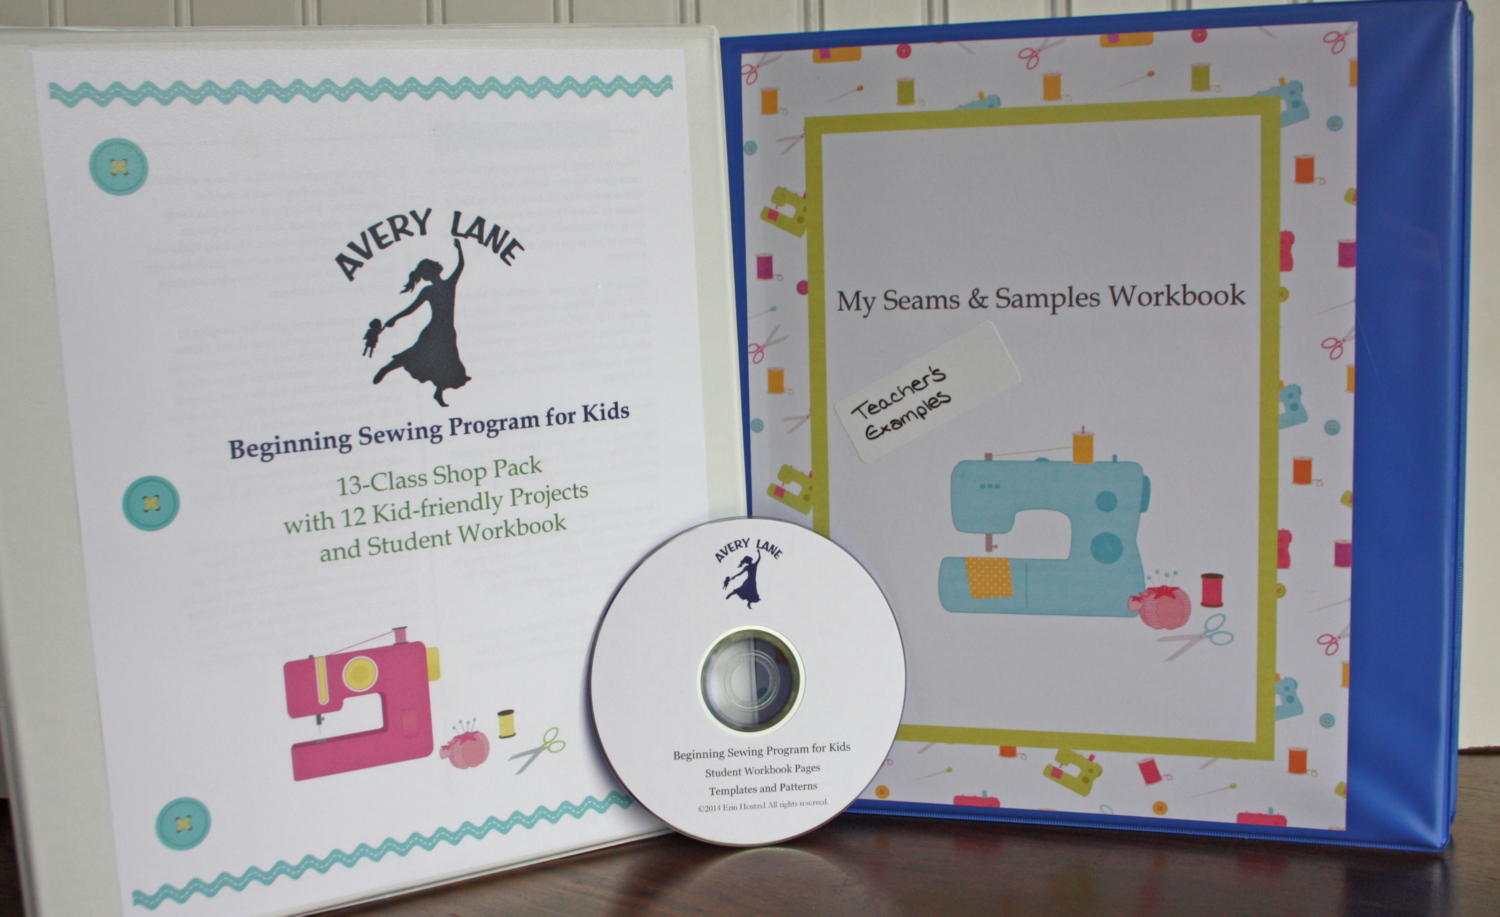 New! Beginning Sewing Program for Kids